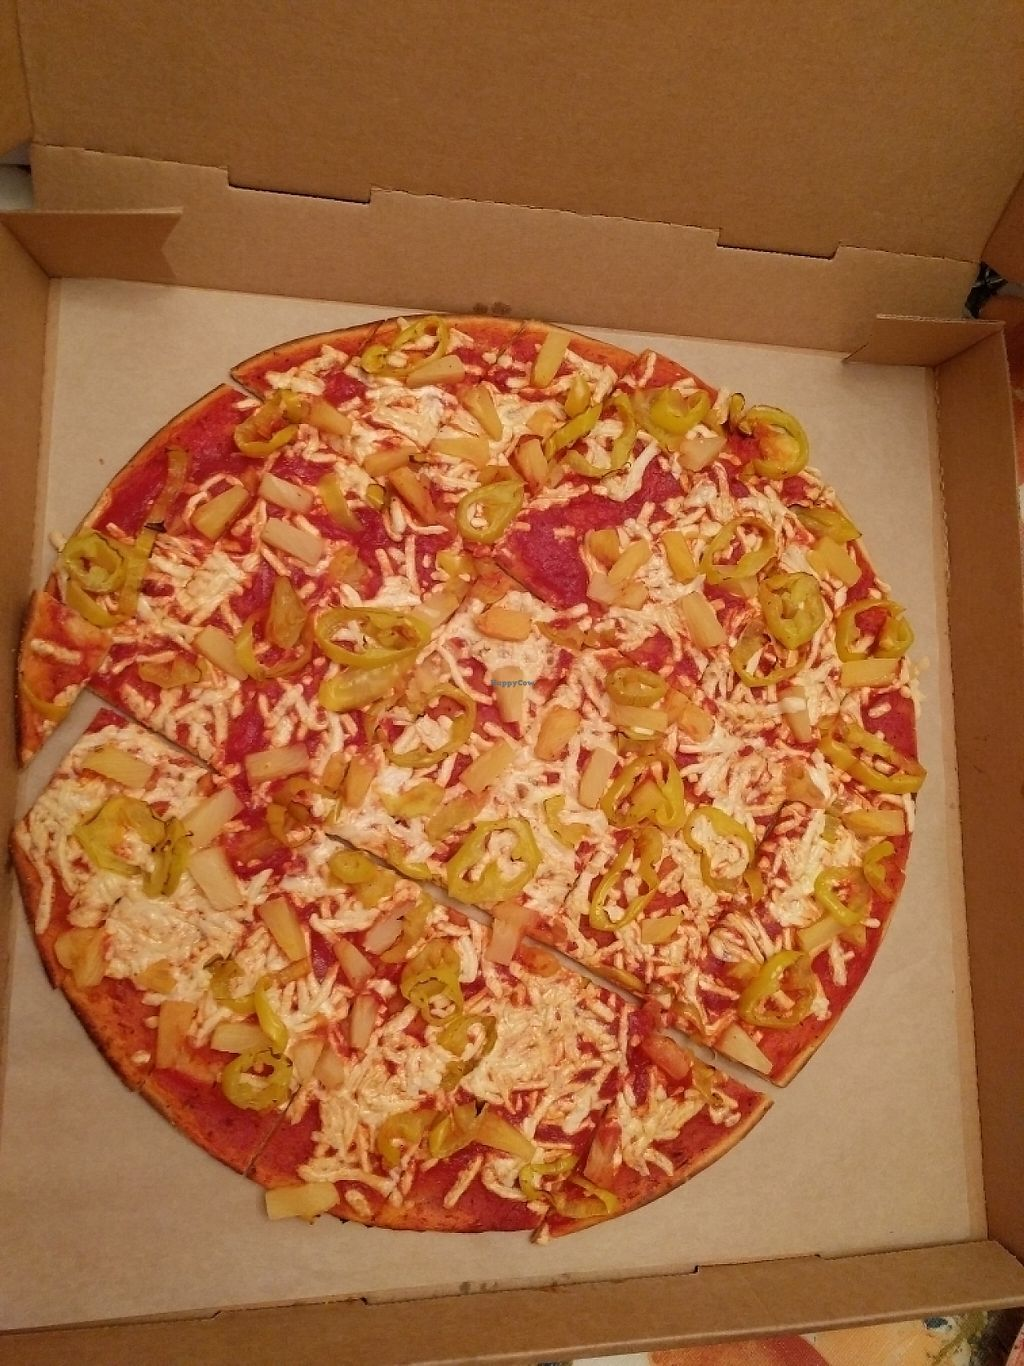 """Photo of Donatos Pizza  by <a href=""""/members/profile/JohnnaJackson"""">JohnnaJackson</a> <br/>Pineapple/banana pepper with vegan cheese <br/> June 1, 2017  - <a href='/contact/abuse/image/93136/264872'>Report</a>"""